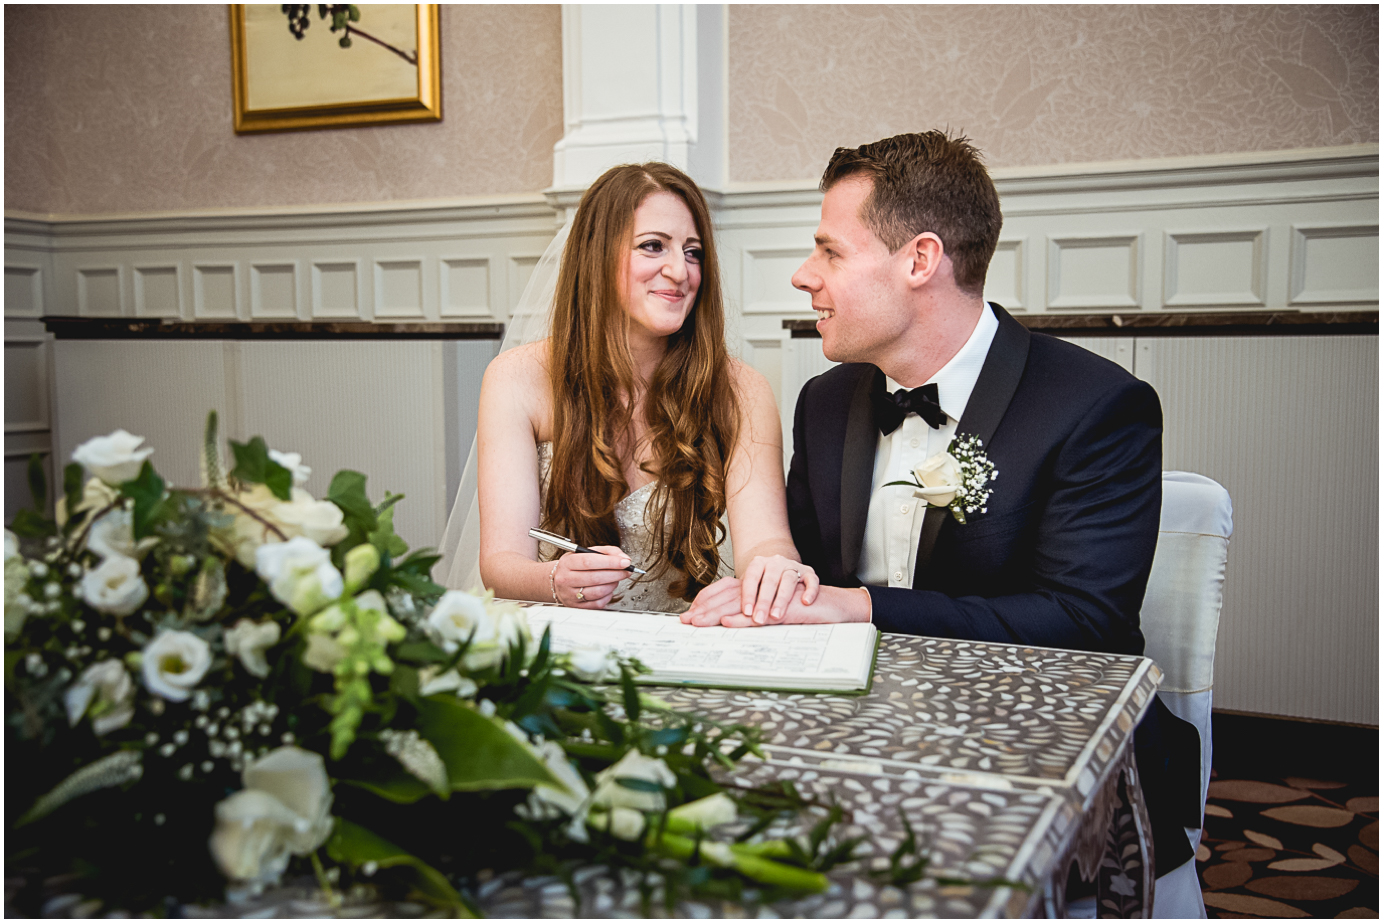 38 - Esmat and Angus - St. Ermin's Hotel London wedding photographer